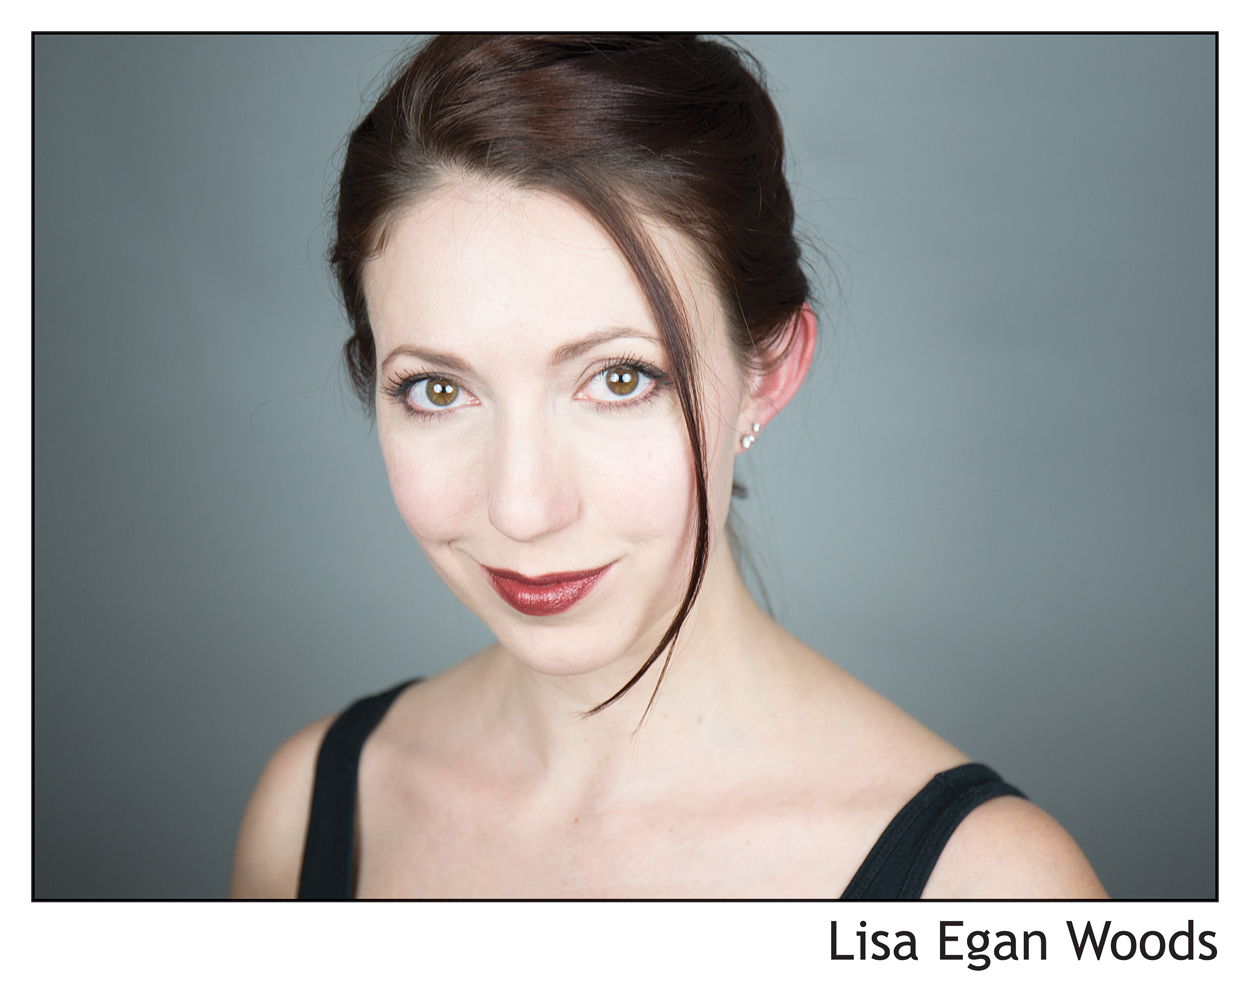 Lisa Egan Woods